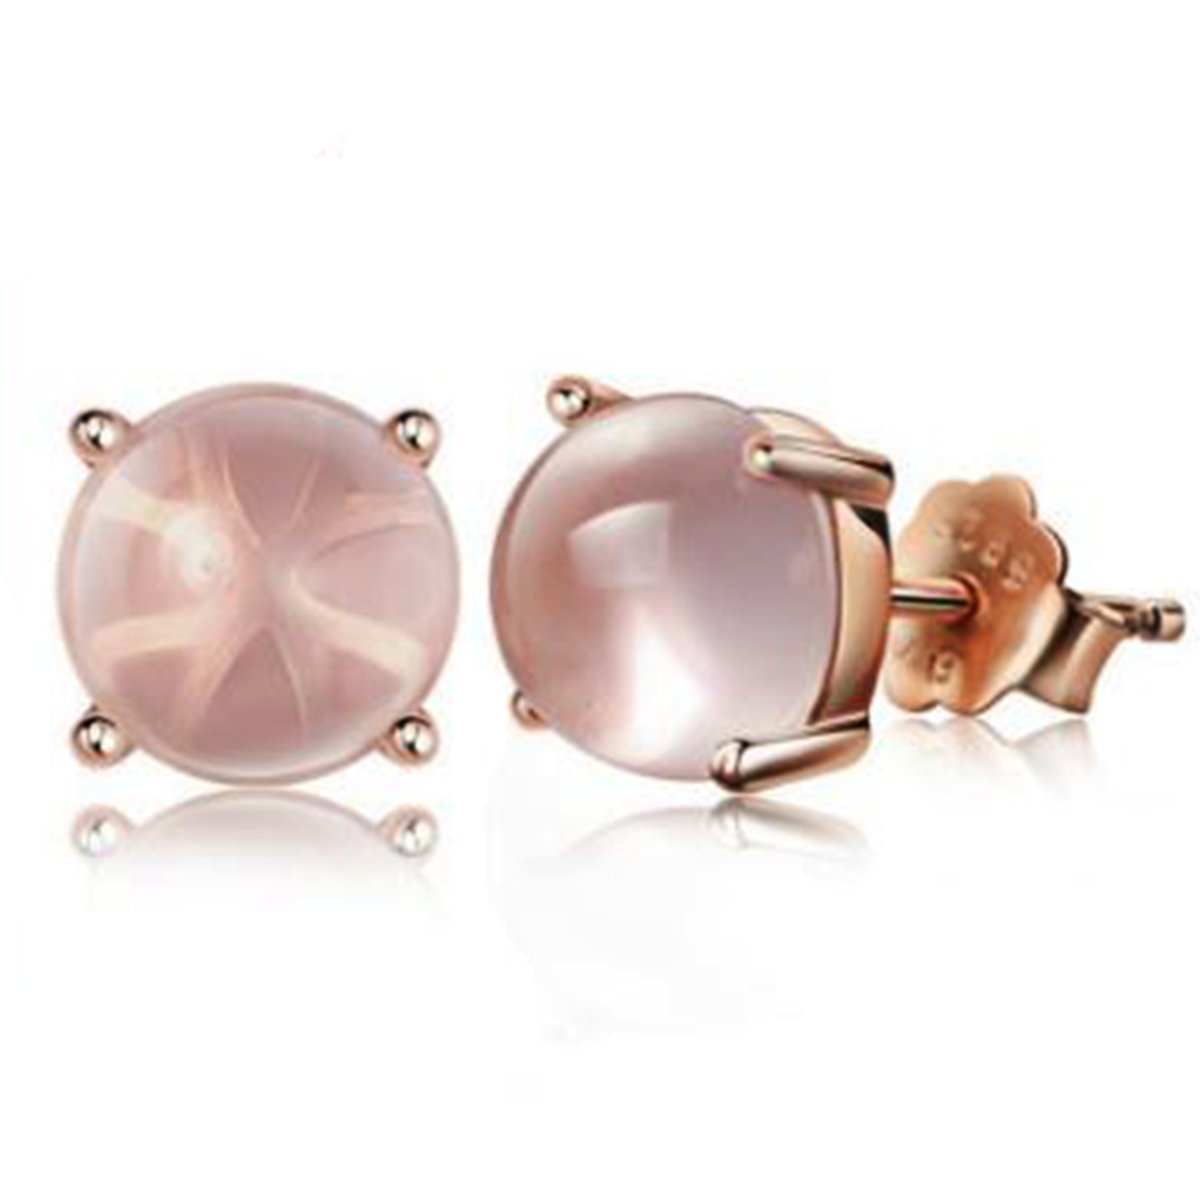 Sephla Rose Gold Plated Stud Earrings Made With Madagascar AAA Light Pink Moonstone For Women SED00094